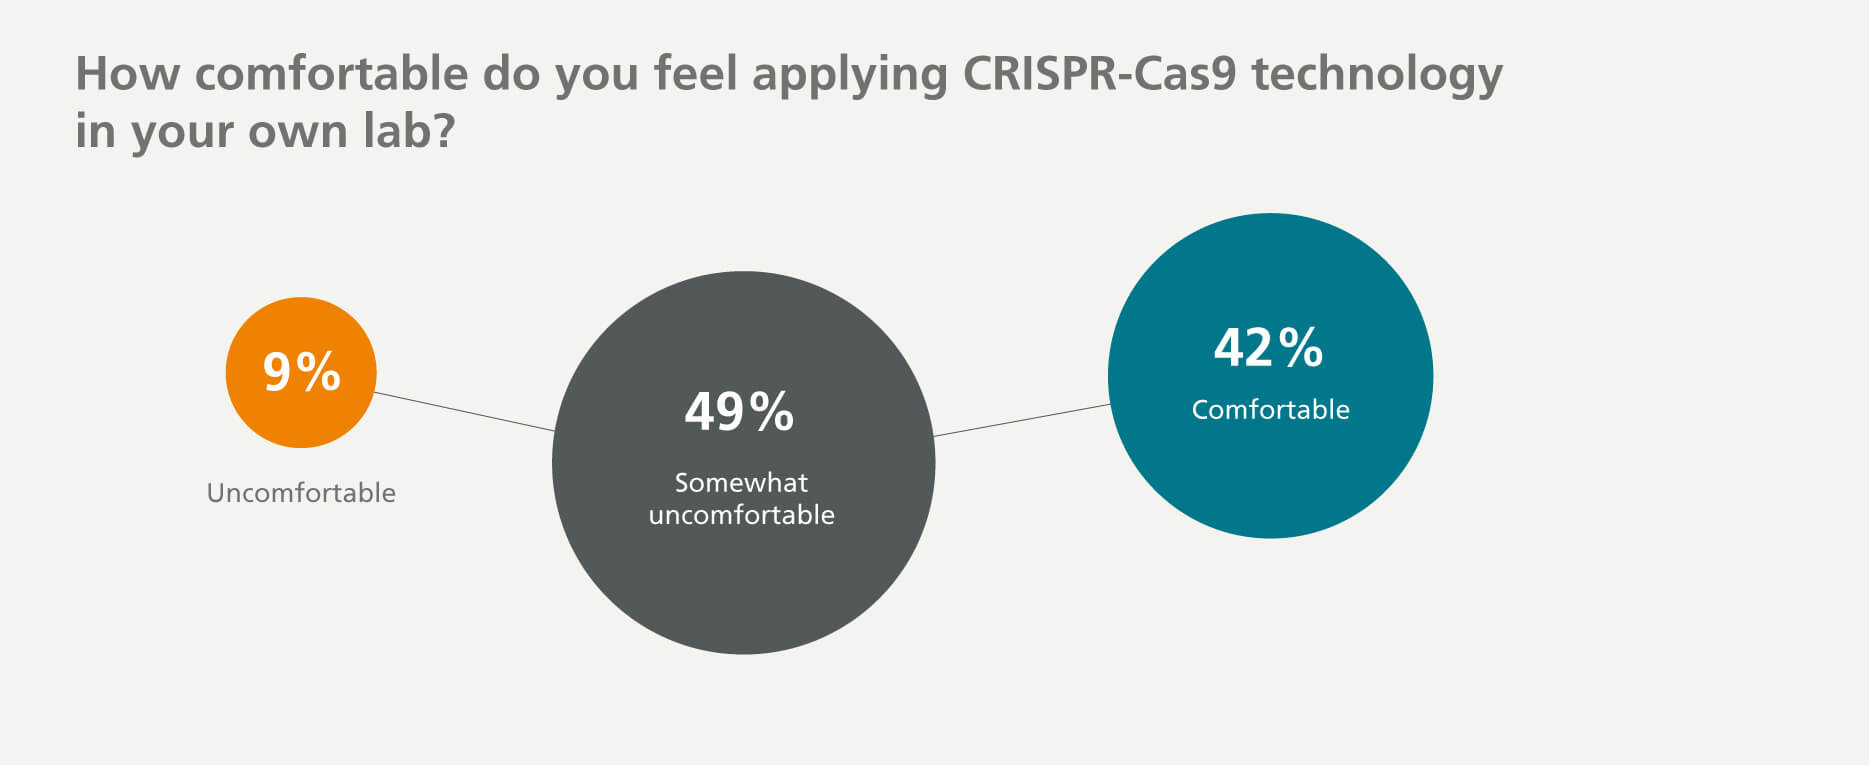 42% of respondents are comfortable in applying CRISPR-Cas9, while 49% are somewhat uncomfortable, and 9% are uncomfortable due to many challenges.